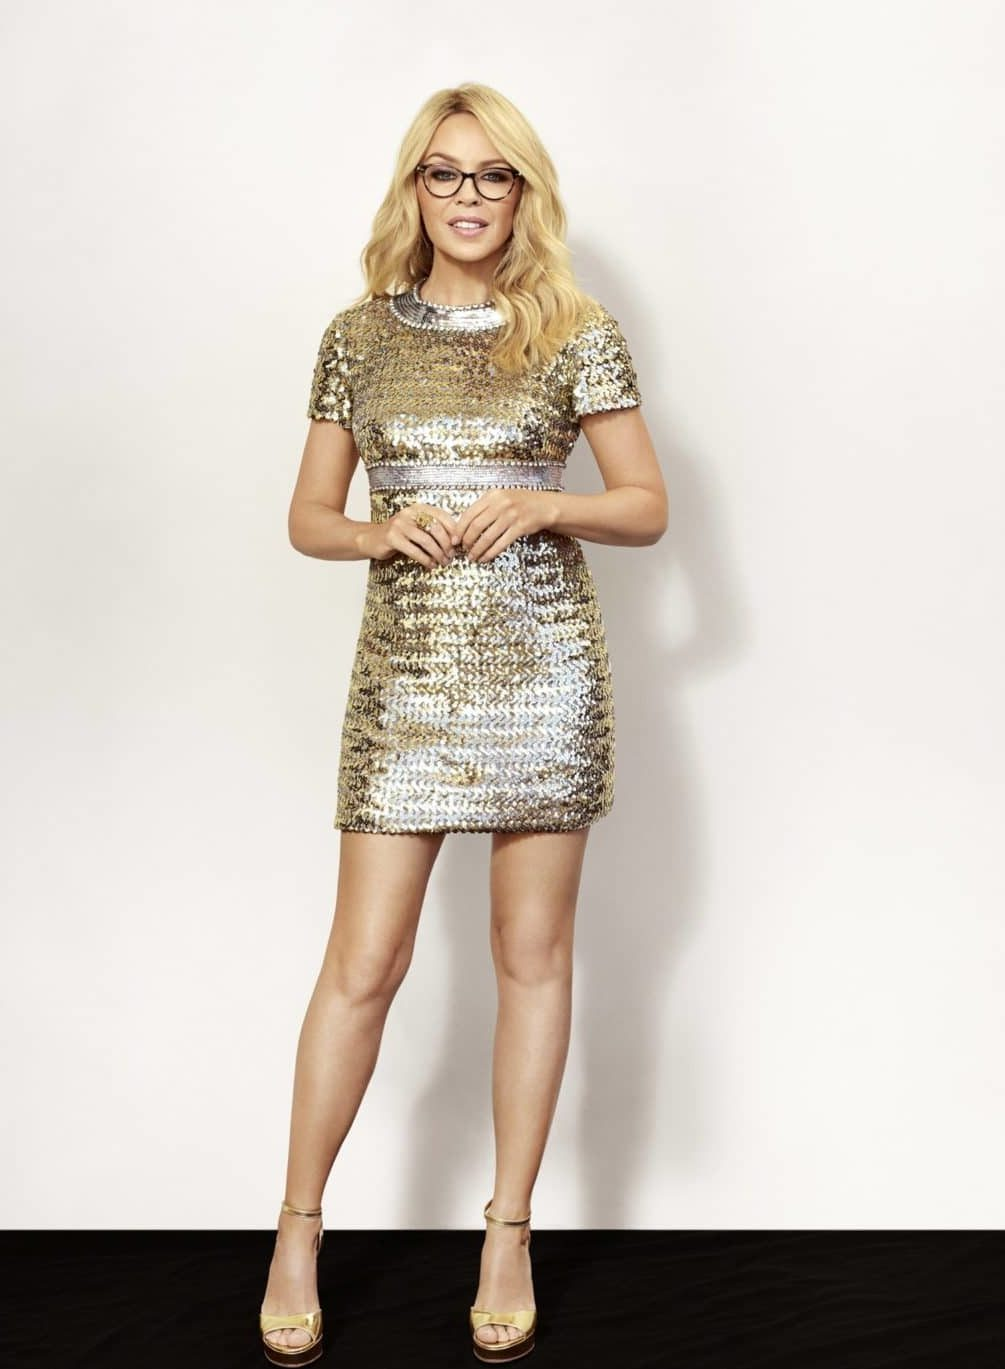 9e2c9631d4 Kylie minogue glasses specsavers cinemas jpg 1005x1369 Sunglasses kylie  minogue white wallpaper